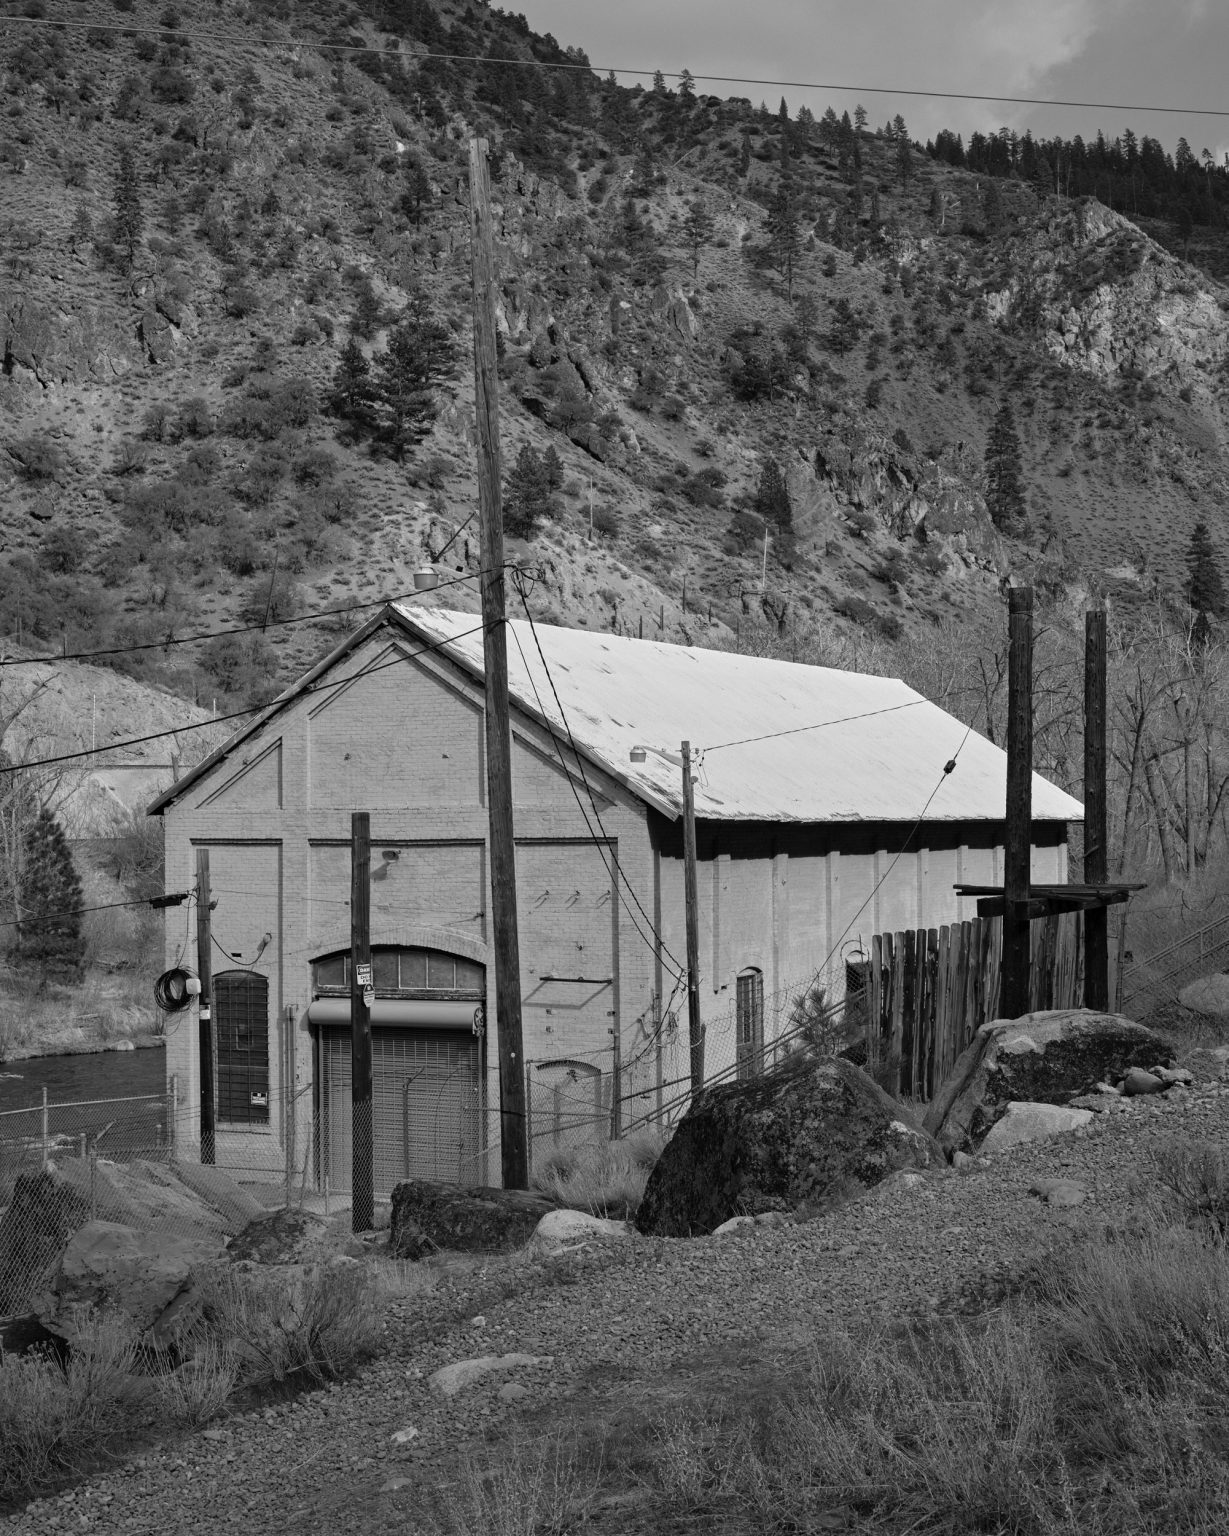 Small hydroelectric plant on the Truckee River. California 2019